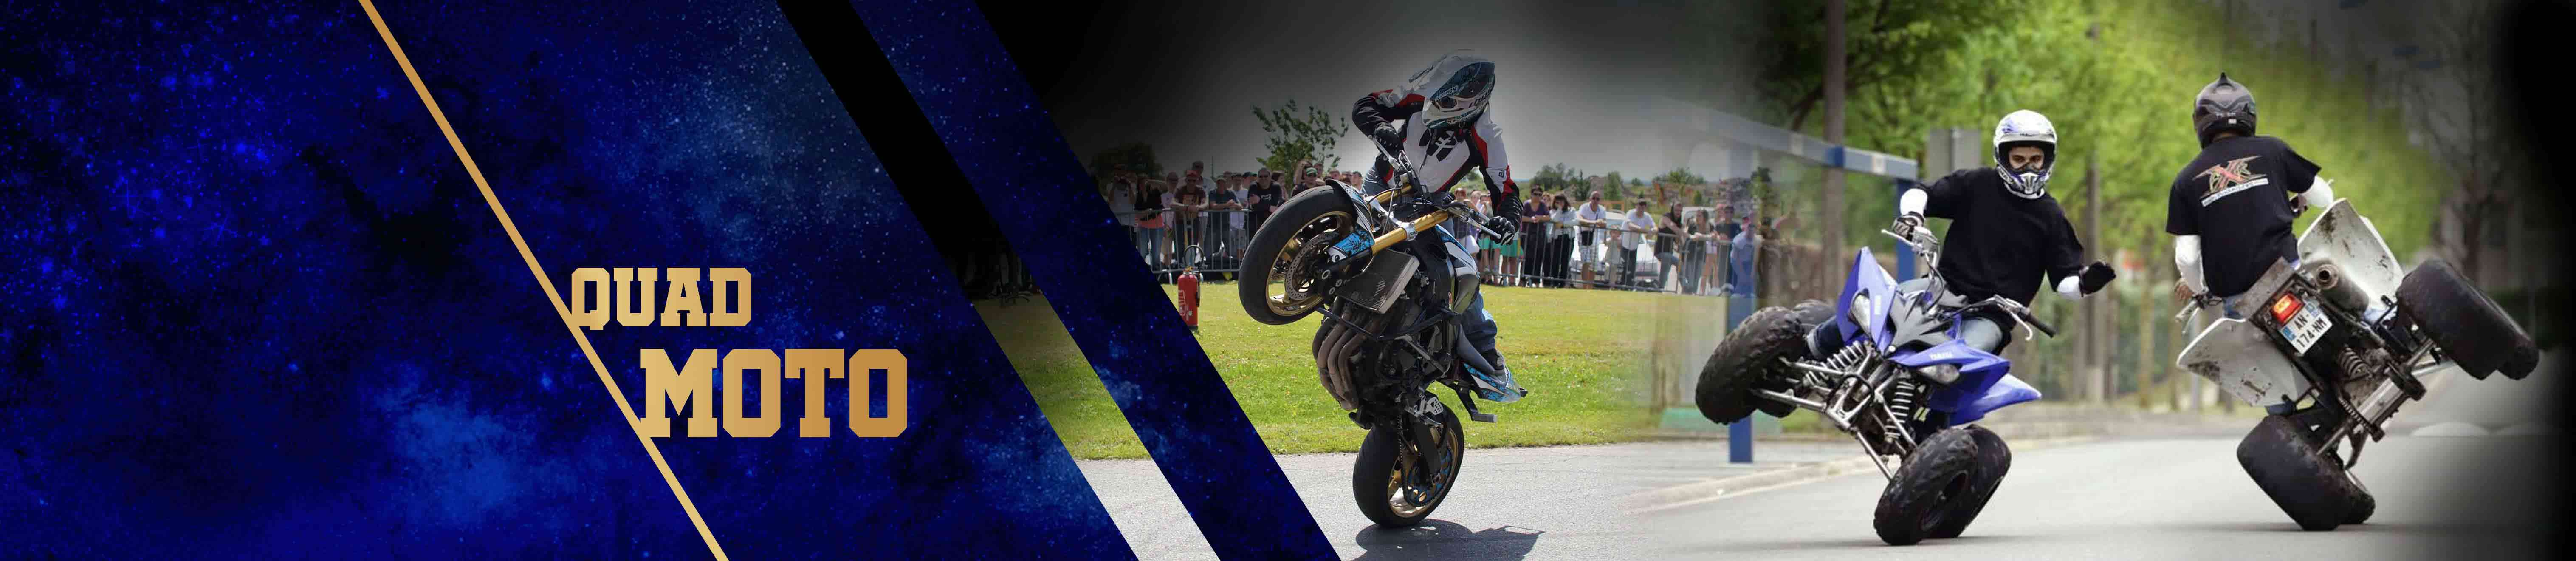 Stunt Show Events